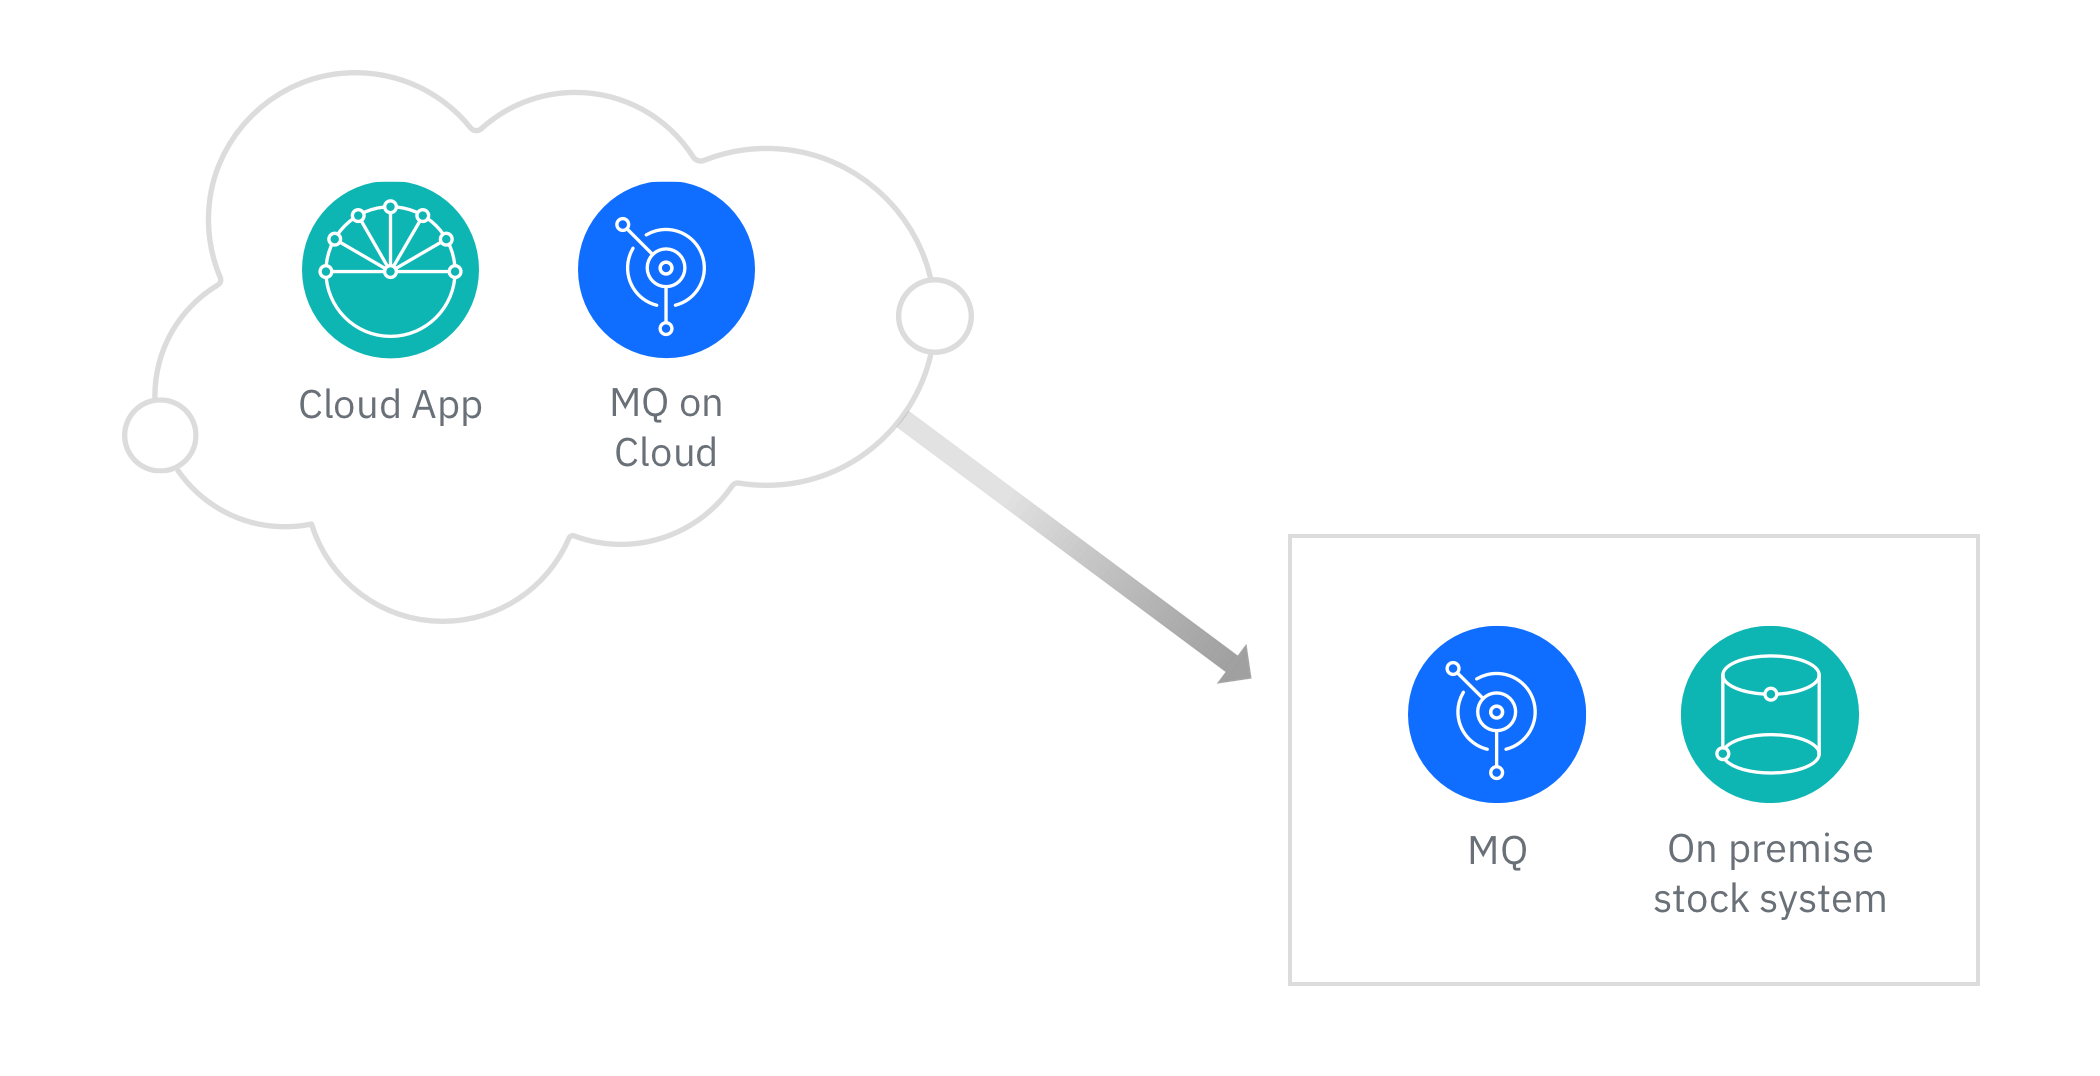 Make on-premises data available in the cloud with IBM MQ on Cloud as depicted by a diagram linking a cloud and MQ app in the cloud to an on-premise MQ app and stock system